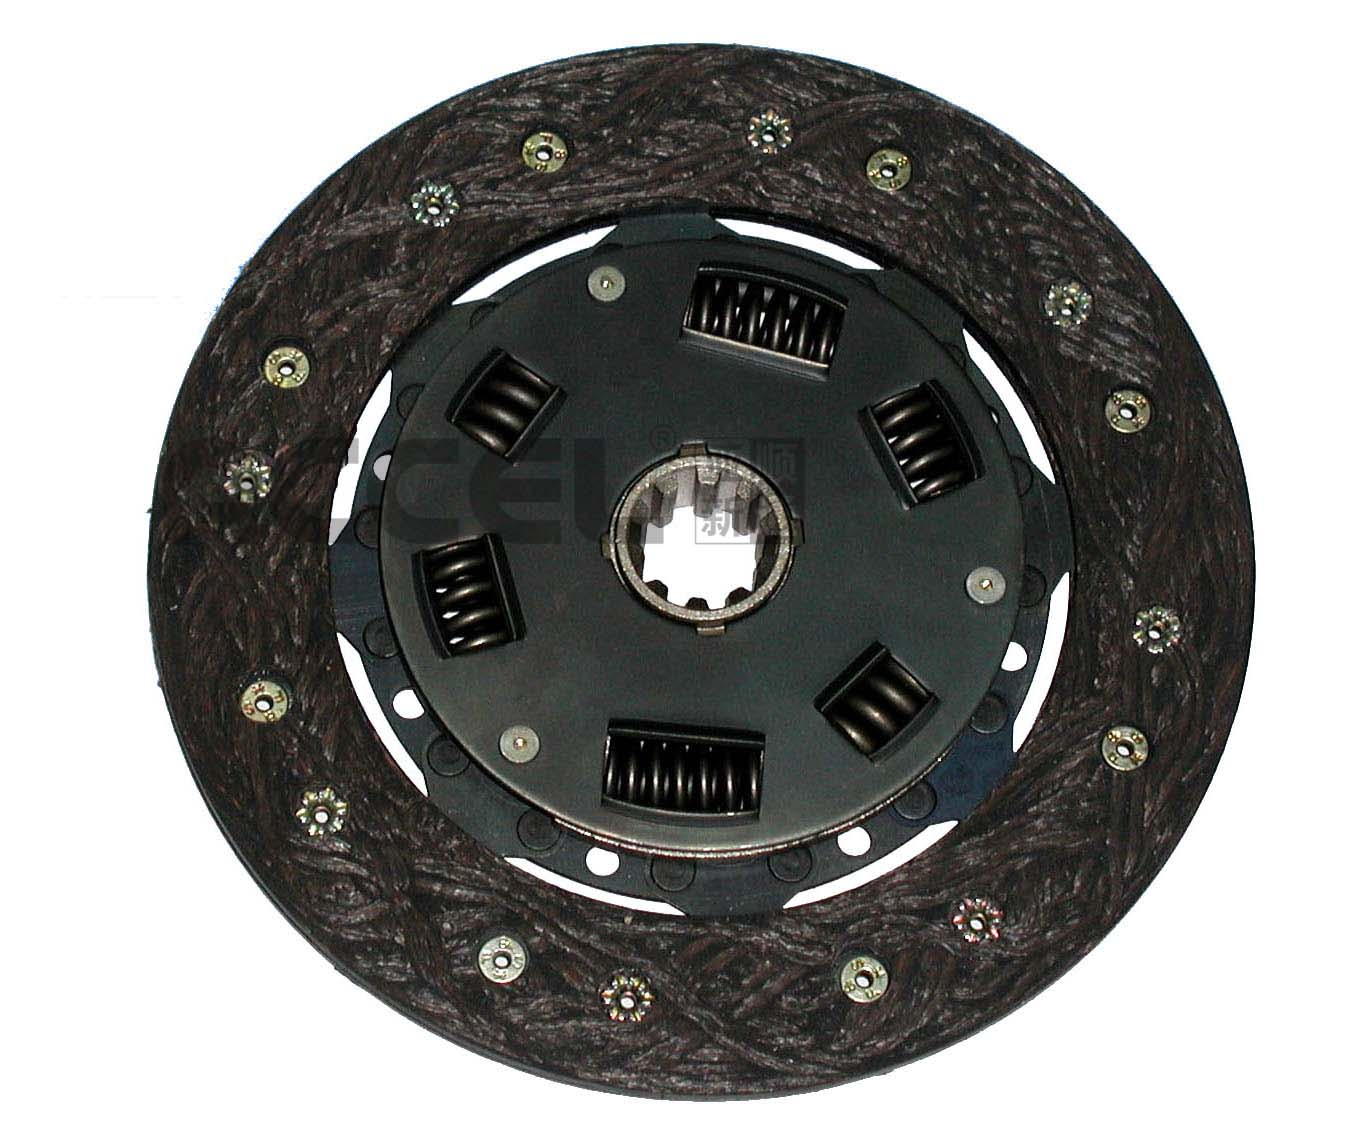 Clutch Disc/OE:1861 543 535/215*145*10*29.1/ABZ-011/MERCEDES BENZ/CL0423/010 250 2403